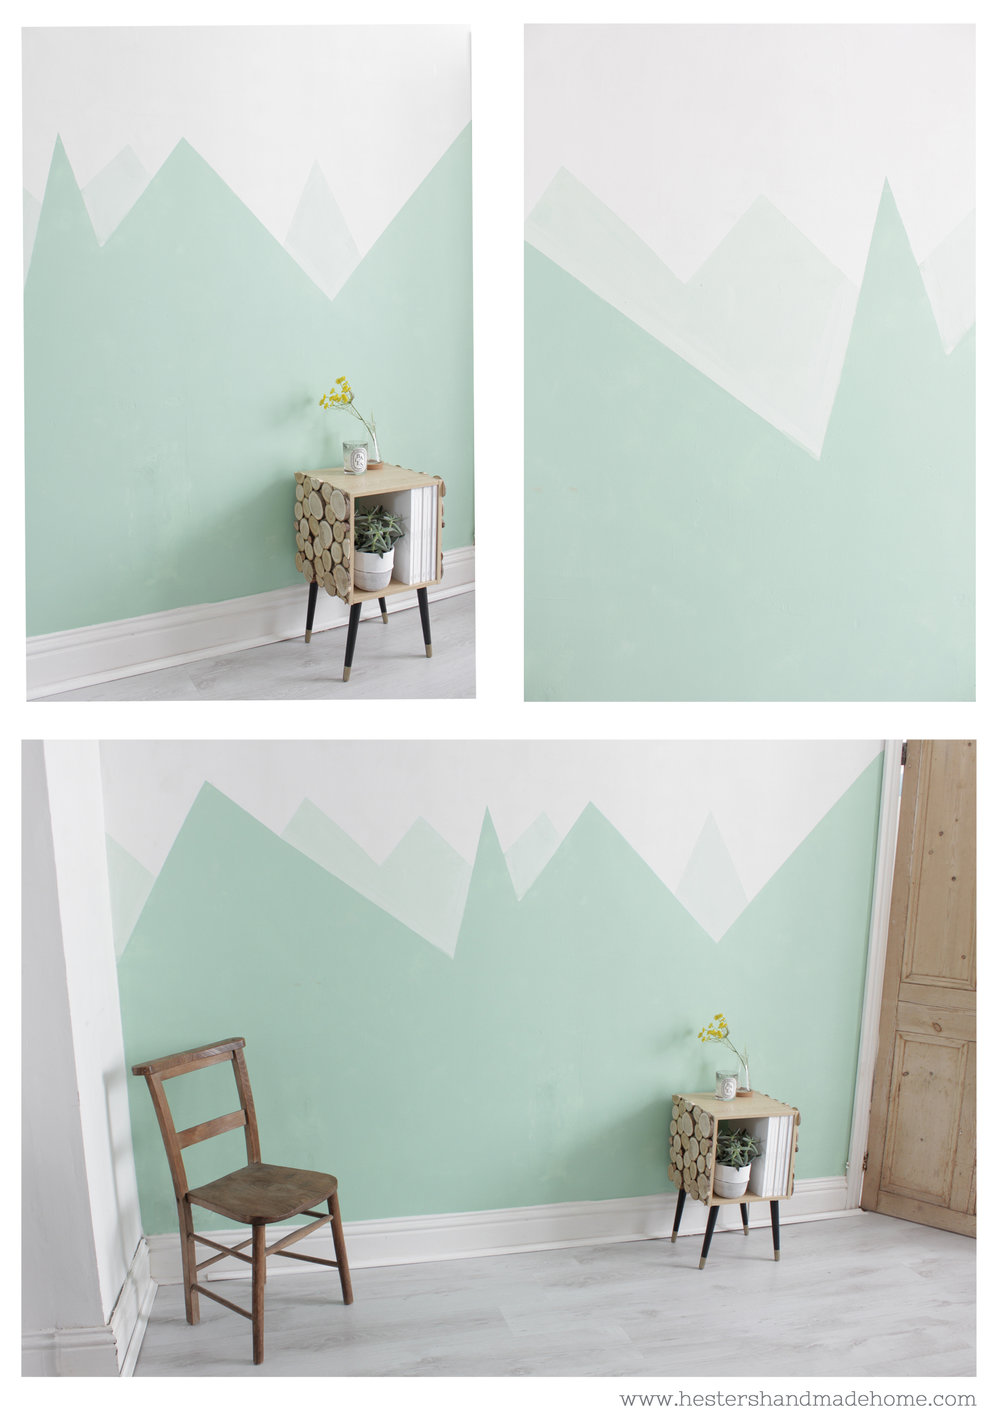 Paint a mountain on your wall by www.hestershandmadehome.com